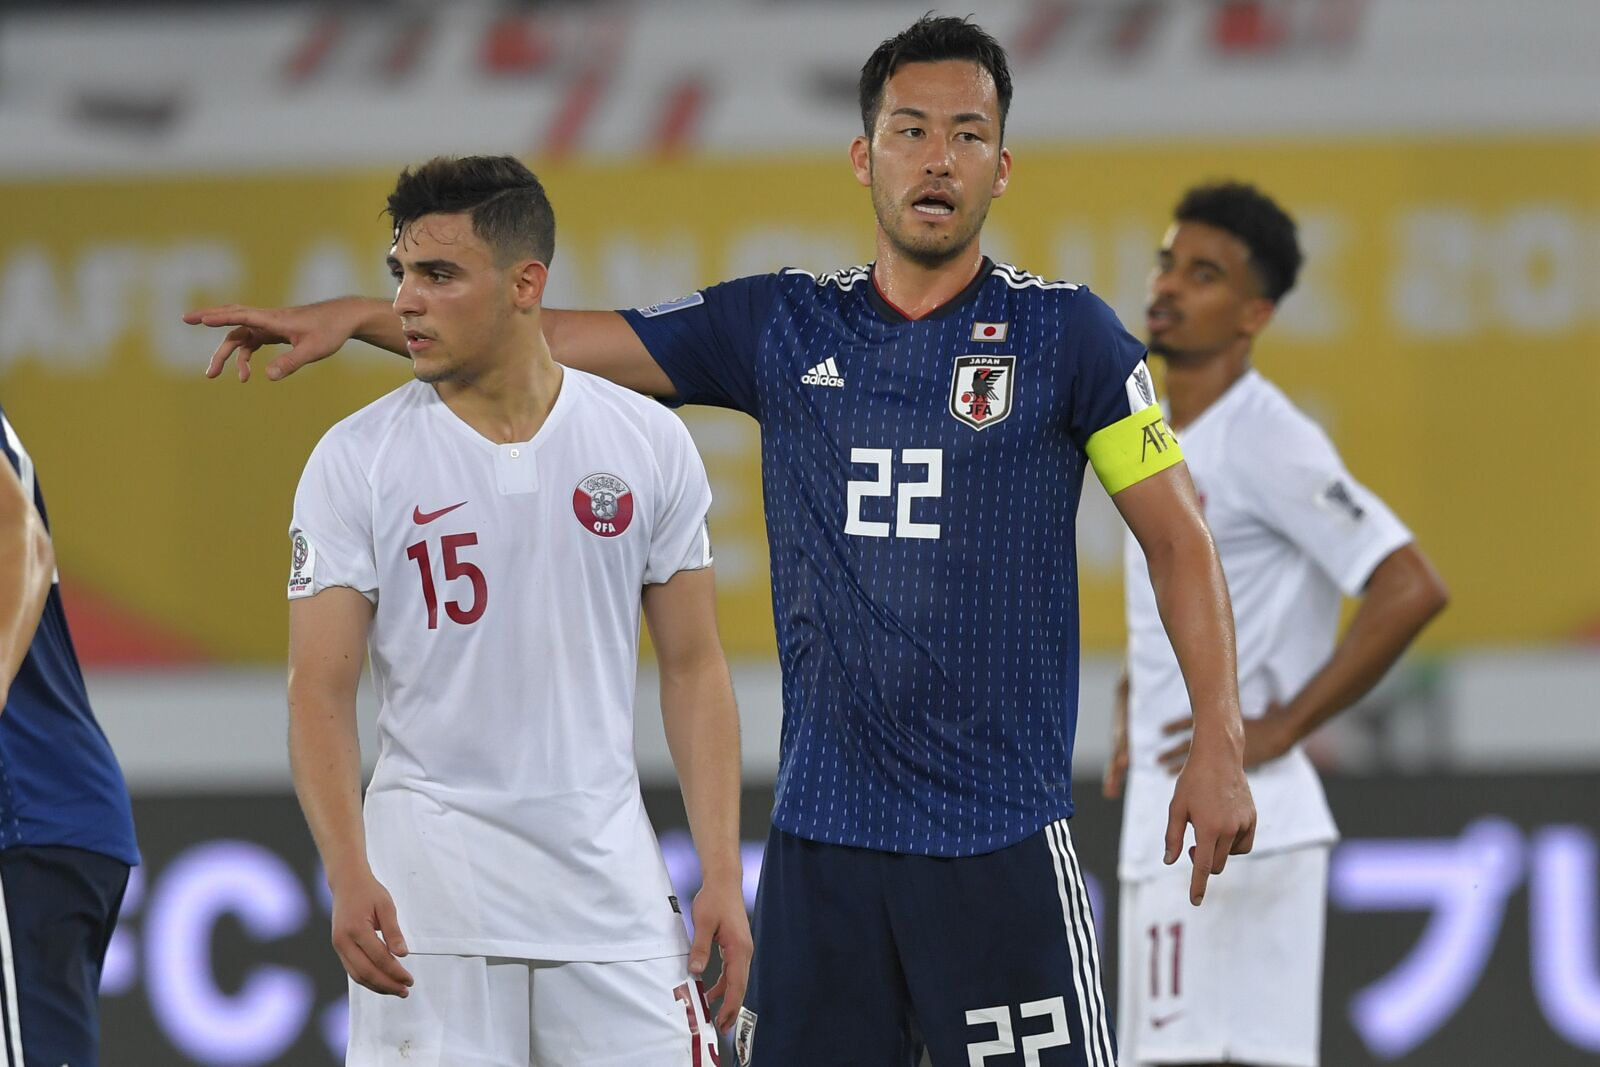 Southampton: Saints defender Yoshida collects 100th cap in Japan win